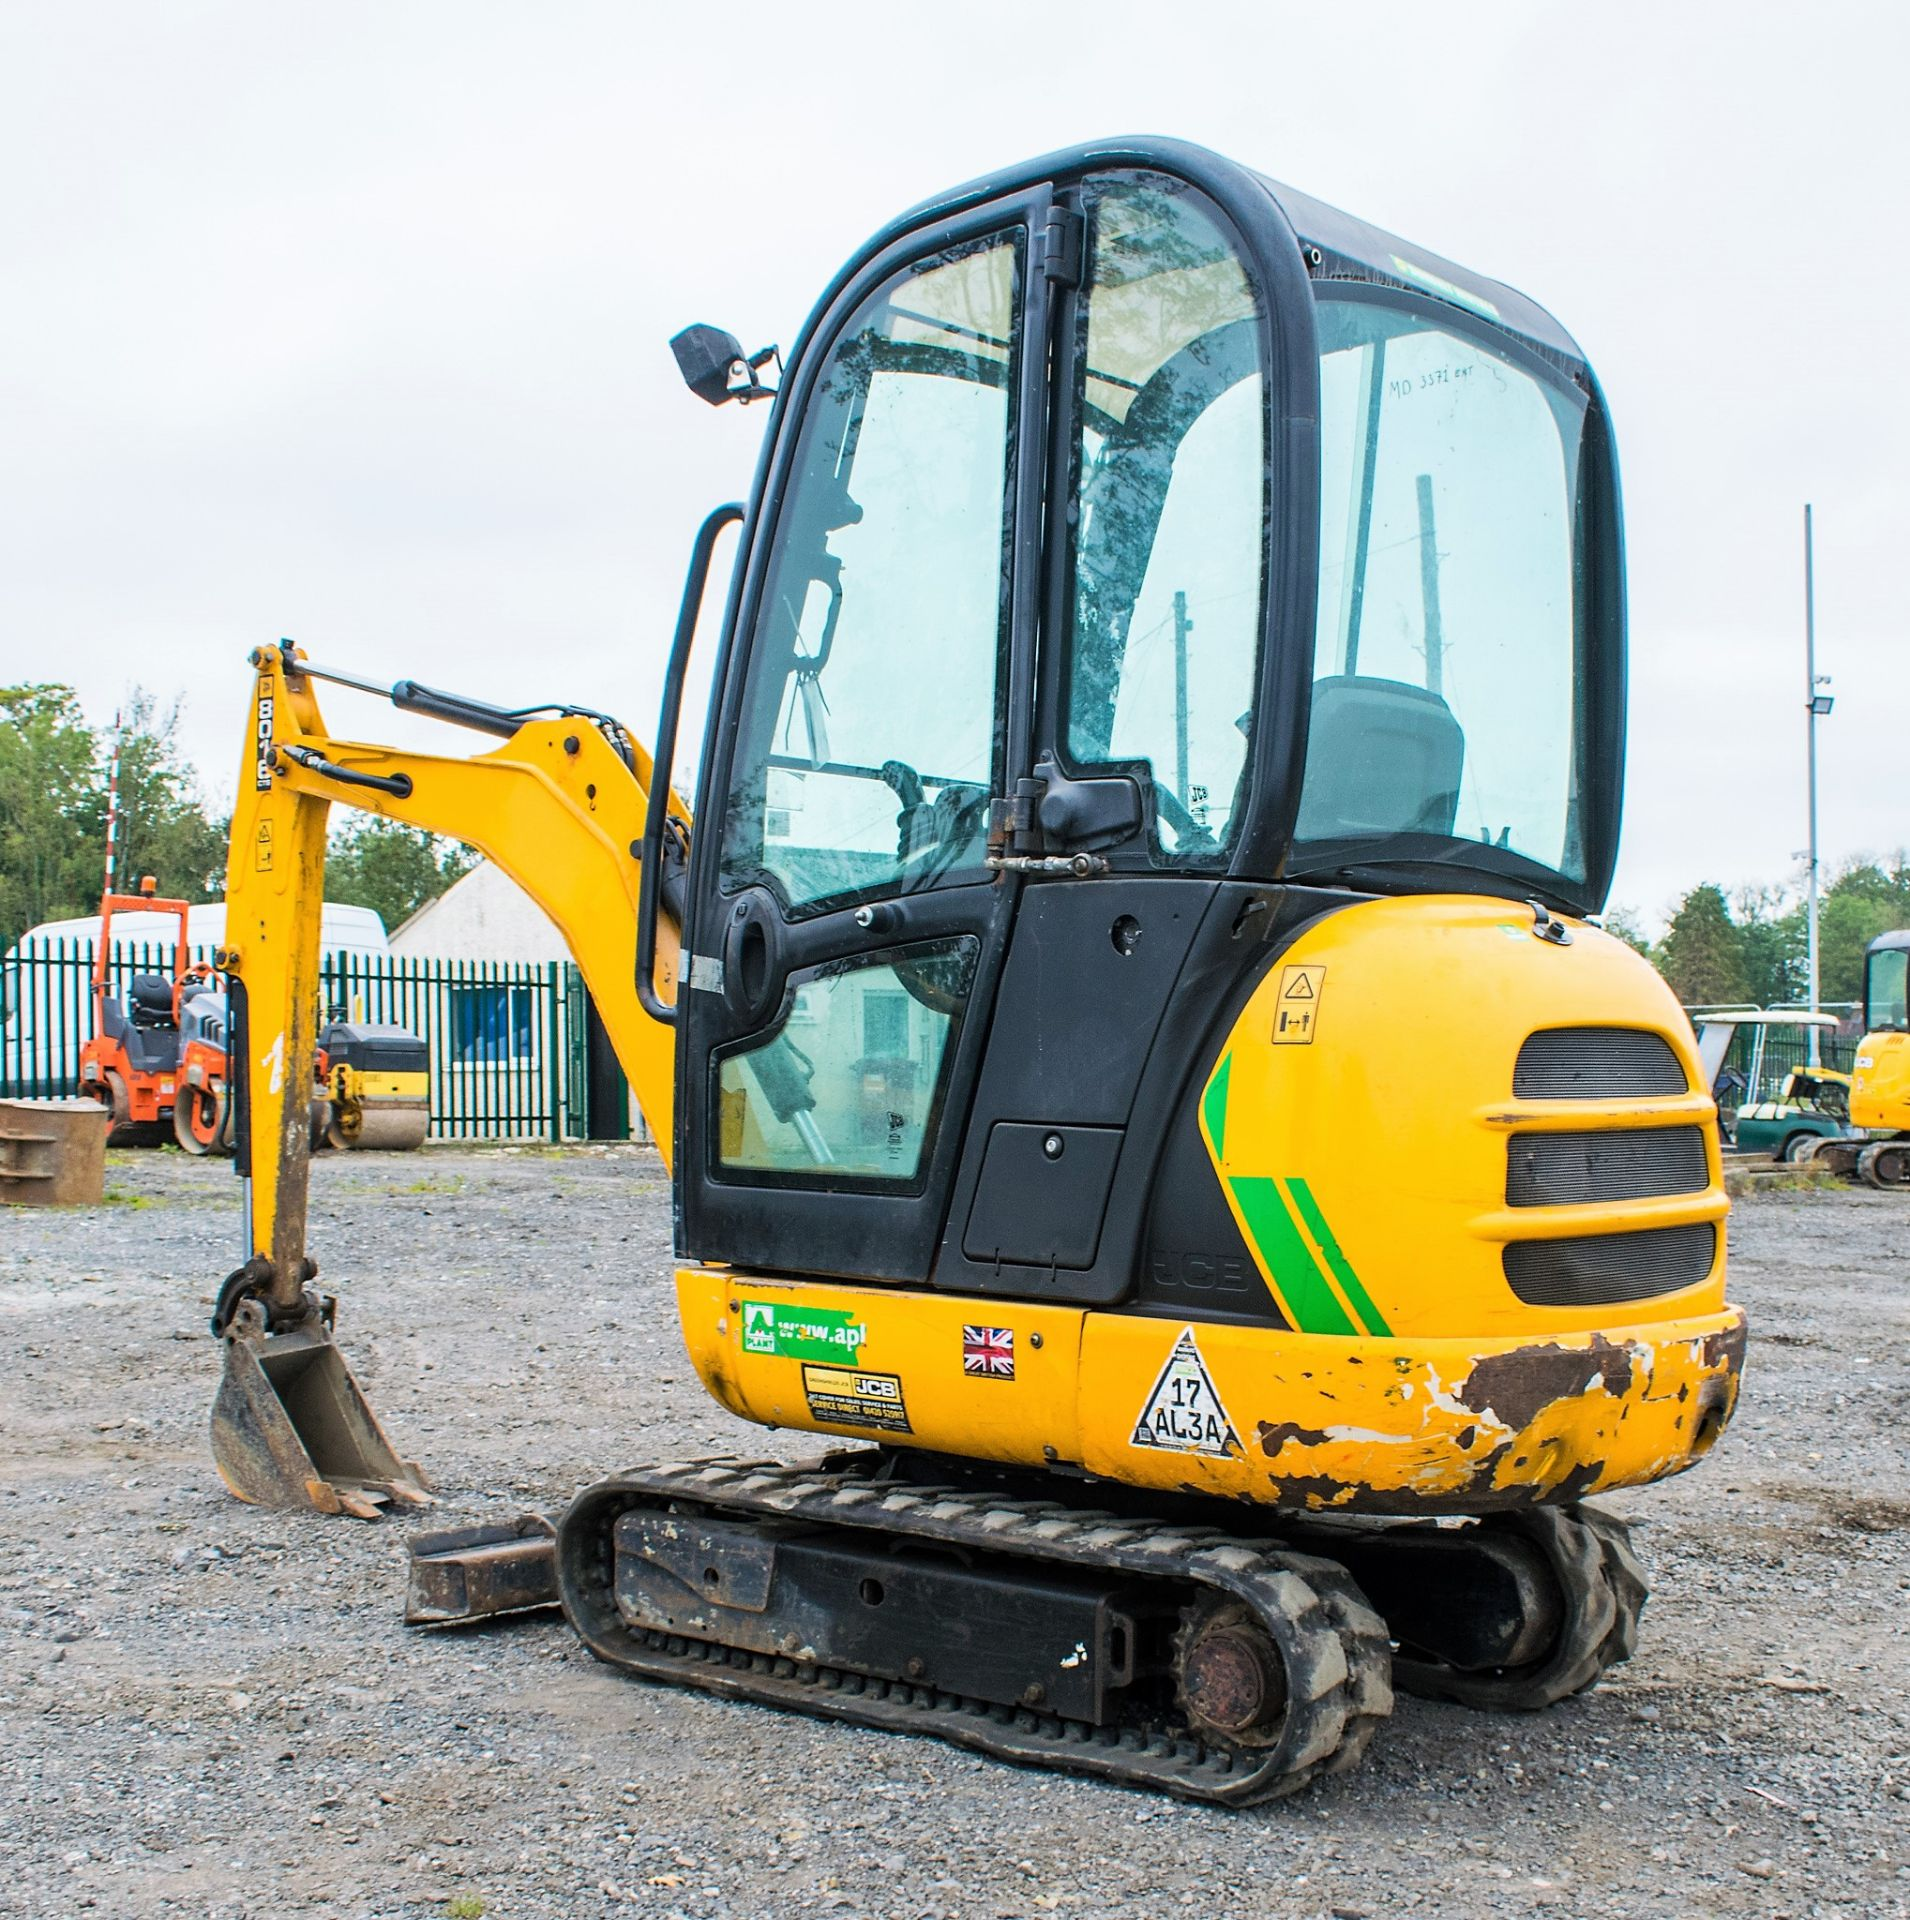 JCB 8016 1.6 tonne rubber tracked excavator  Year: 2015 S/N: 1733 Recorded Hours: 1861 A669405 - Image 4 of 20